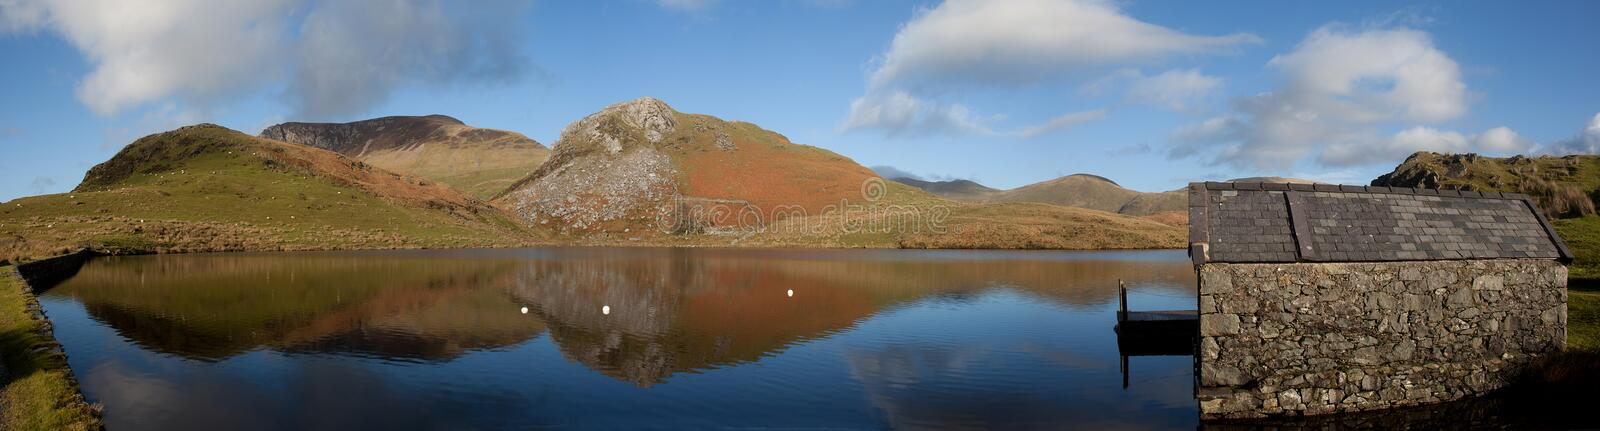 Download Llyn Y Dywarchen A Fishing Lake Stock Image - Image: 17099693